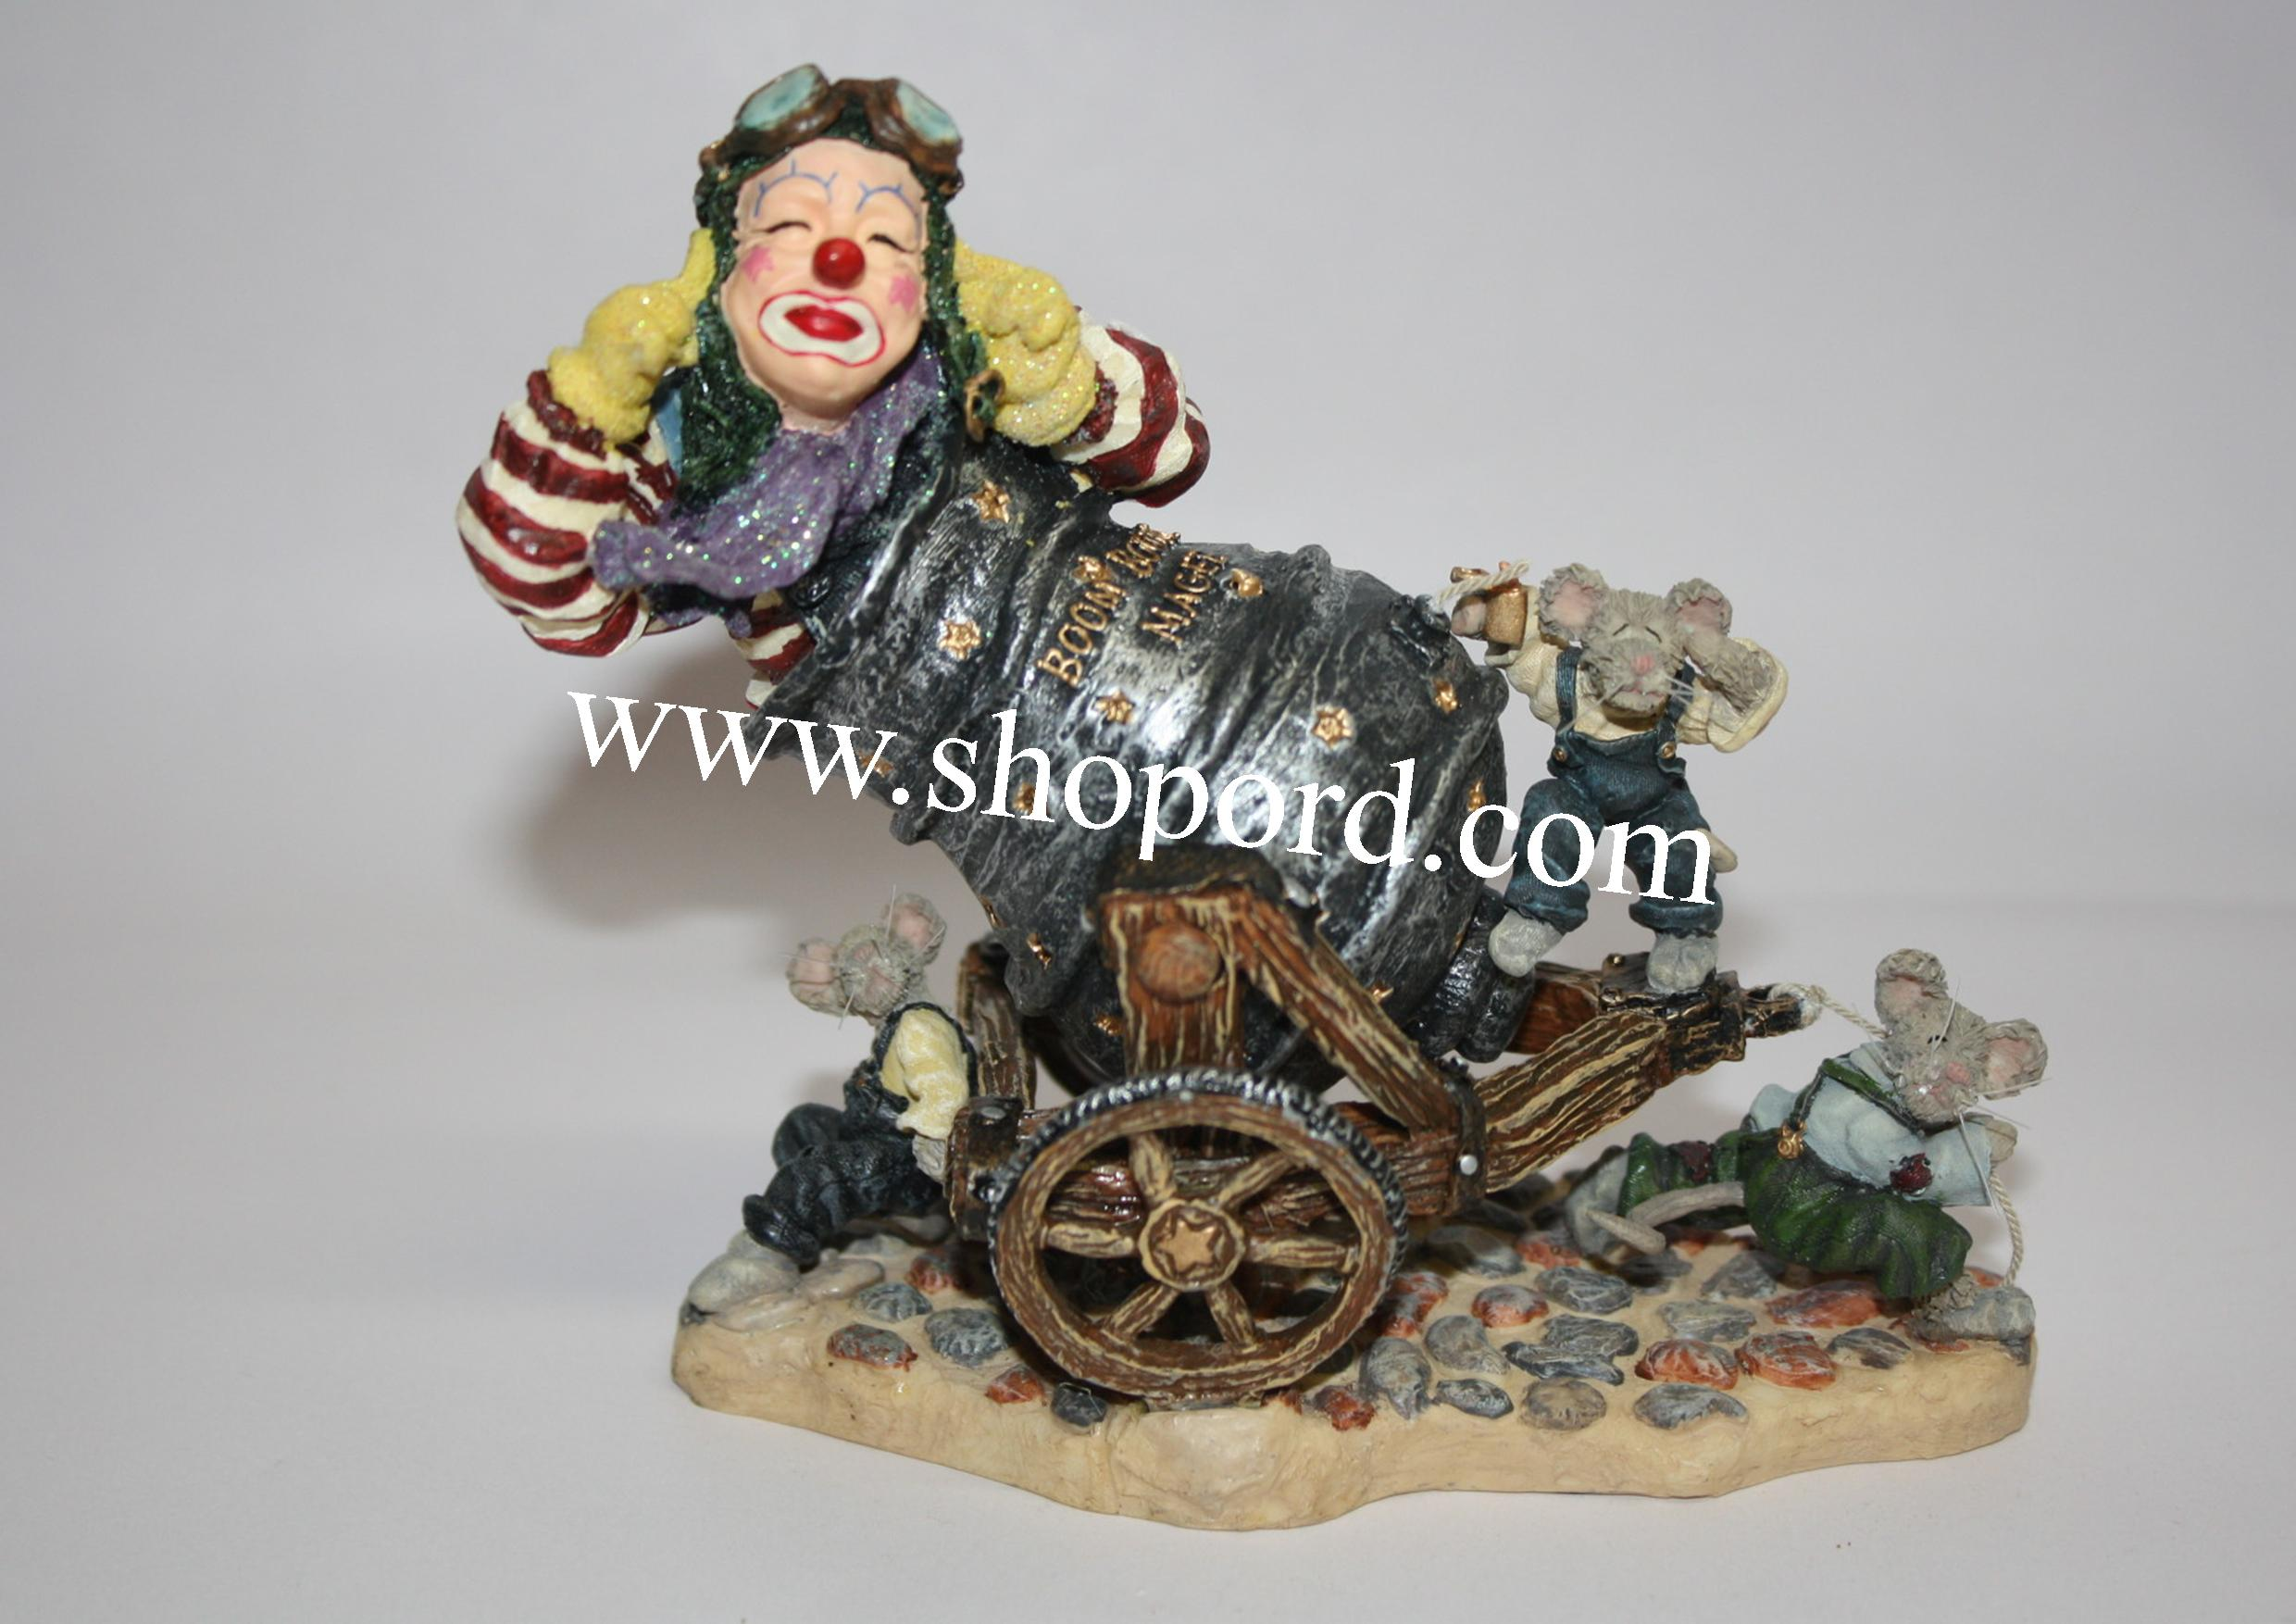 Boyds The Wee Folkstone - Boom Boom Magee with Match & Fuse (Thar She Blows!) #36403